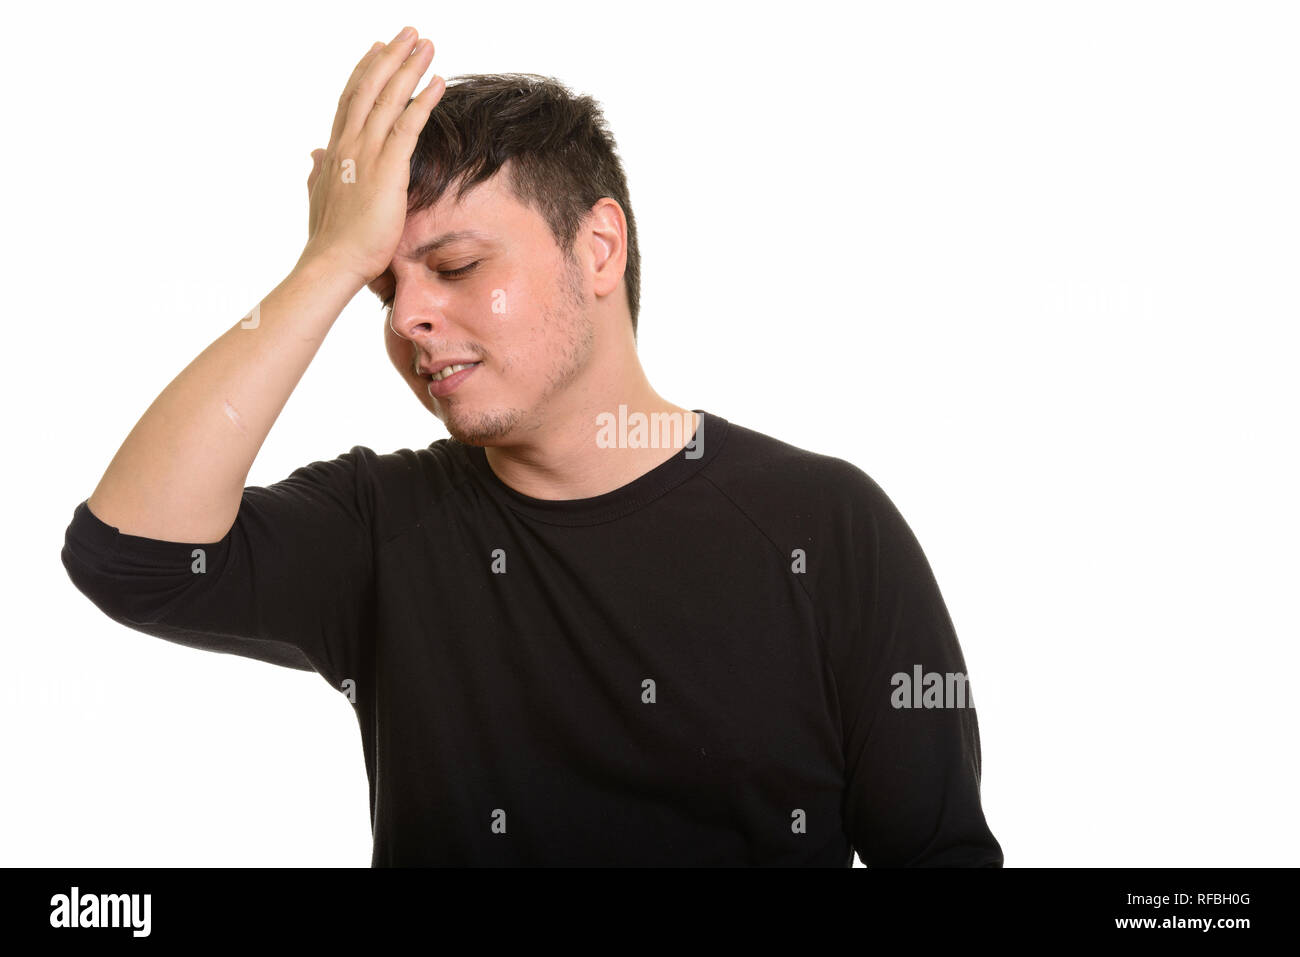 Studio shot of Caucasian man looking disappointed - Stock Image